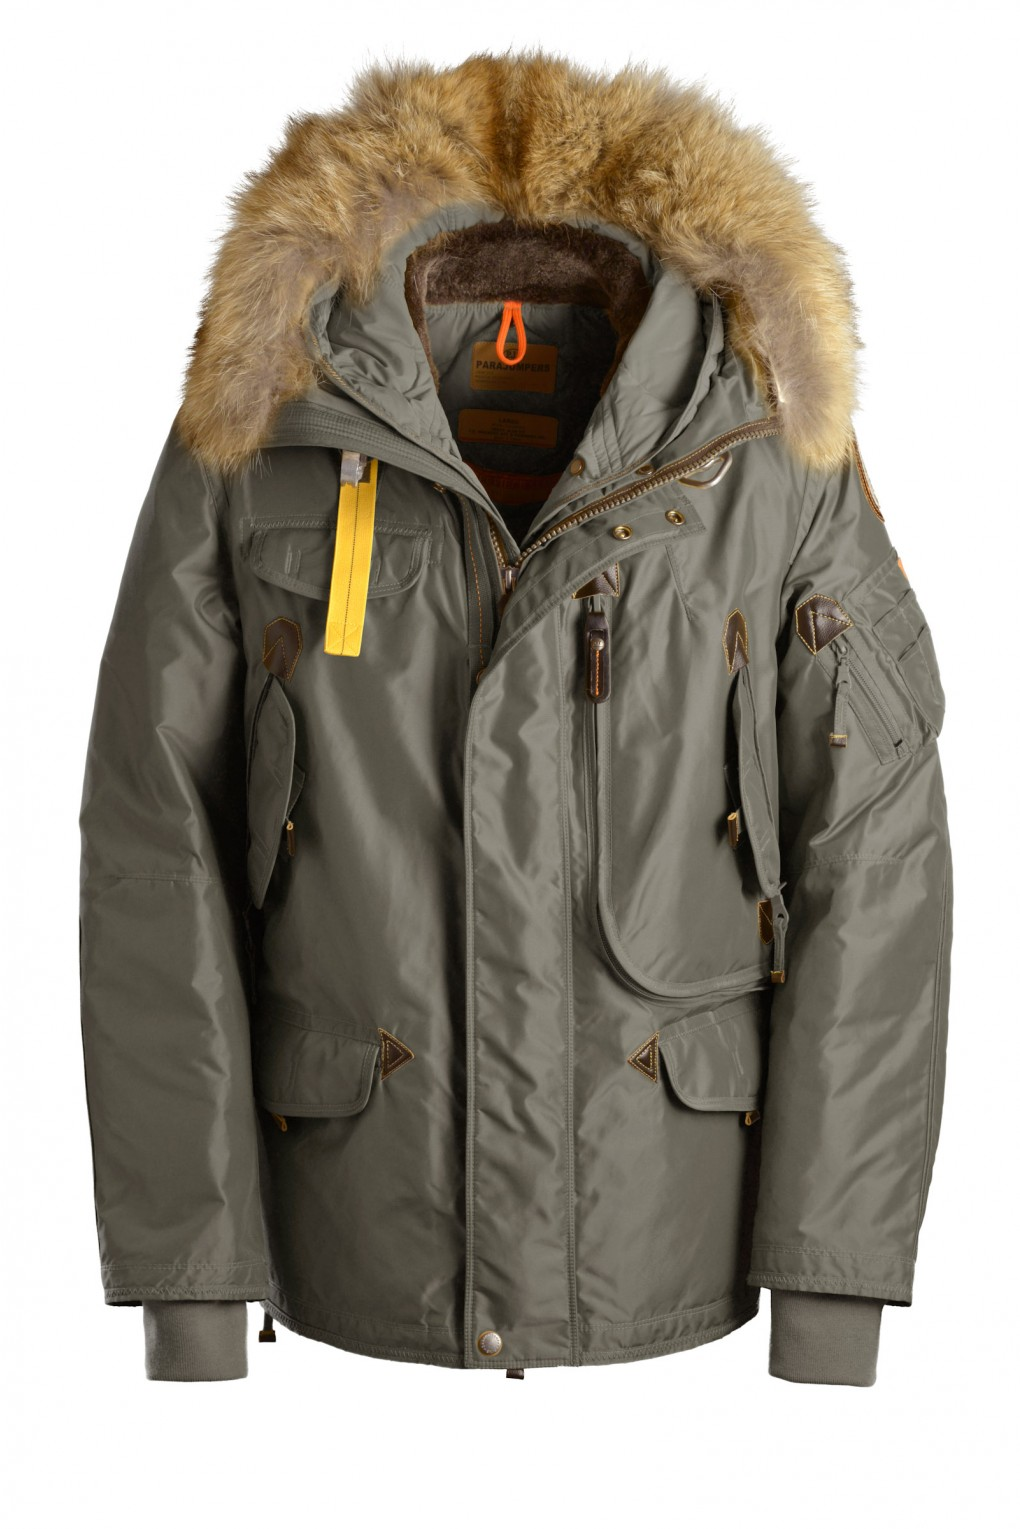 parajumpers RIGHT HAND man outerwear Sage